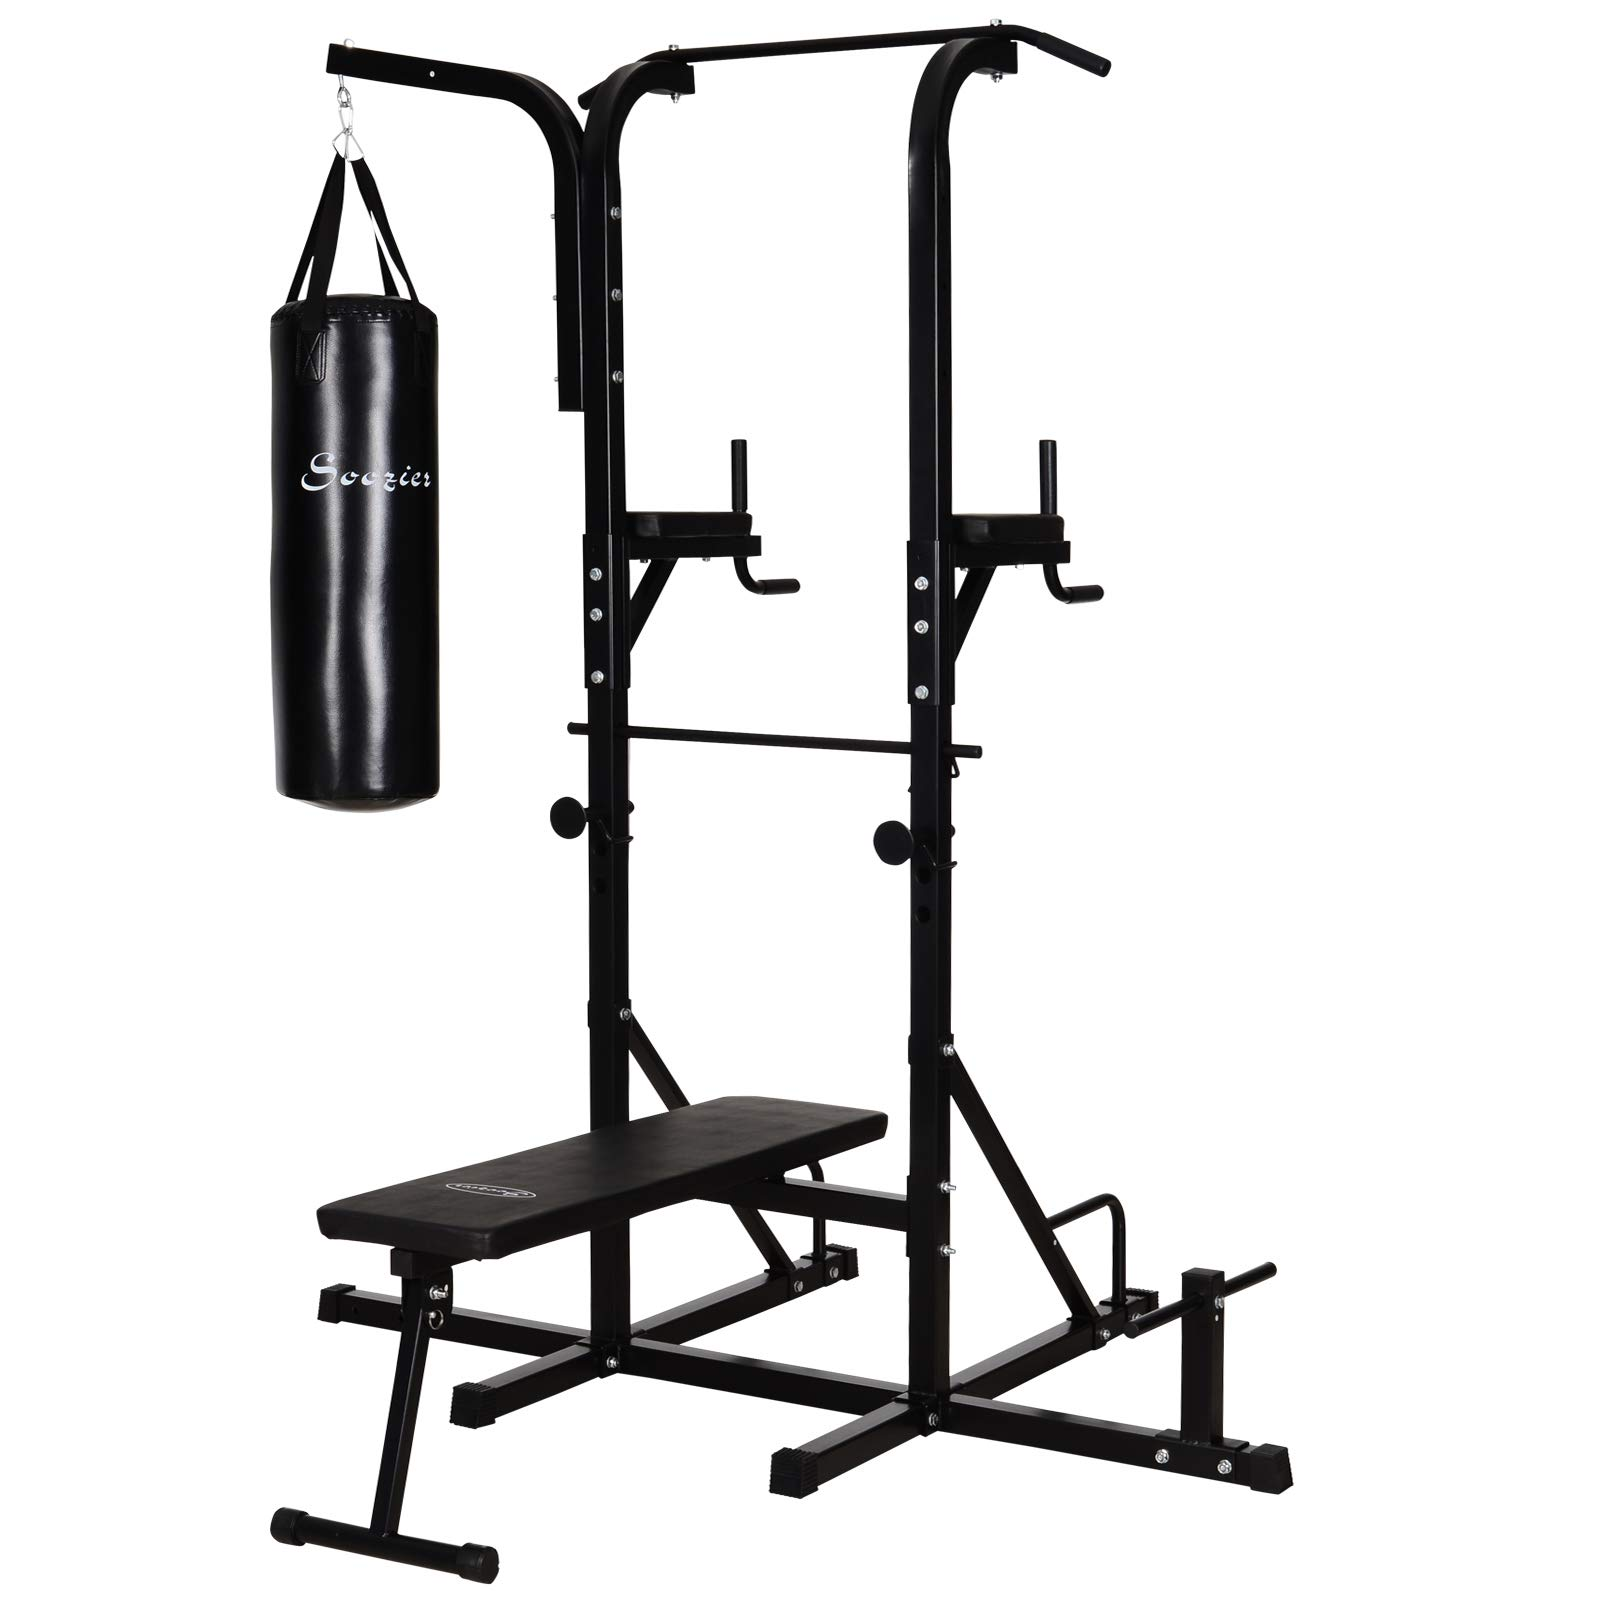 Soozier Home Gym Power Tower with Bench and Punching Bag, Multi-Function Adjustable Dip Sit Up Workout Station Equipment Heavy Duty for Home